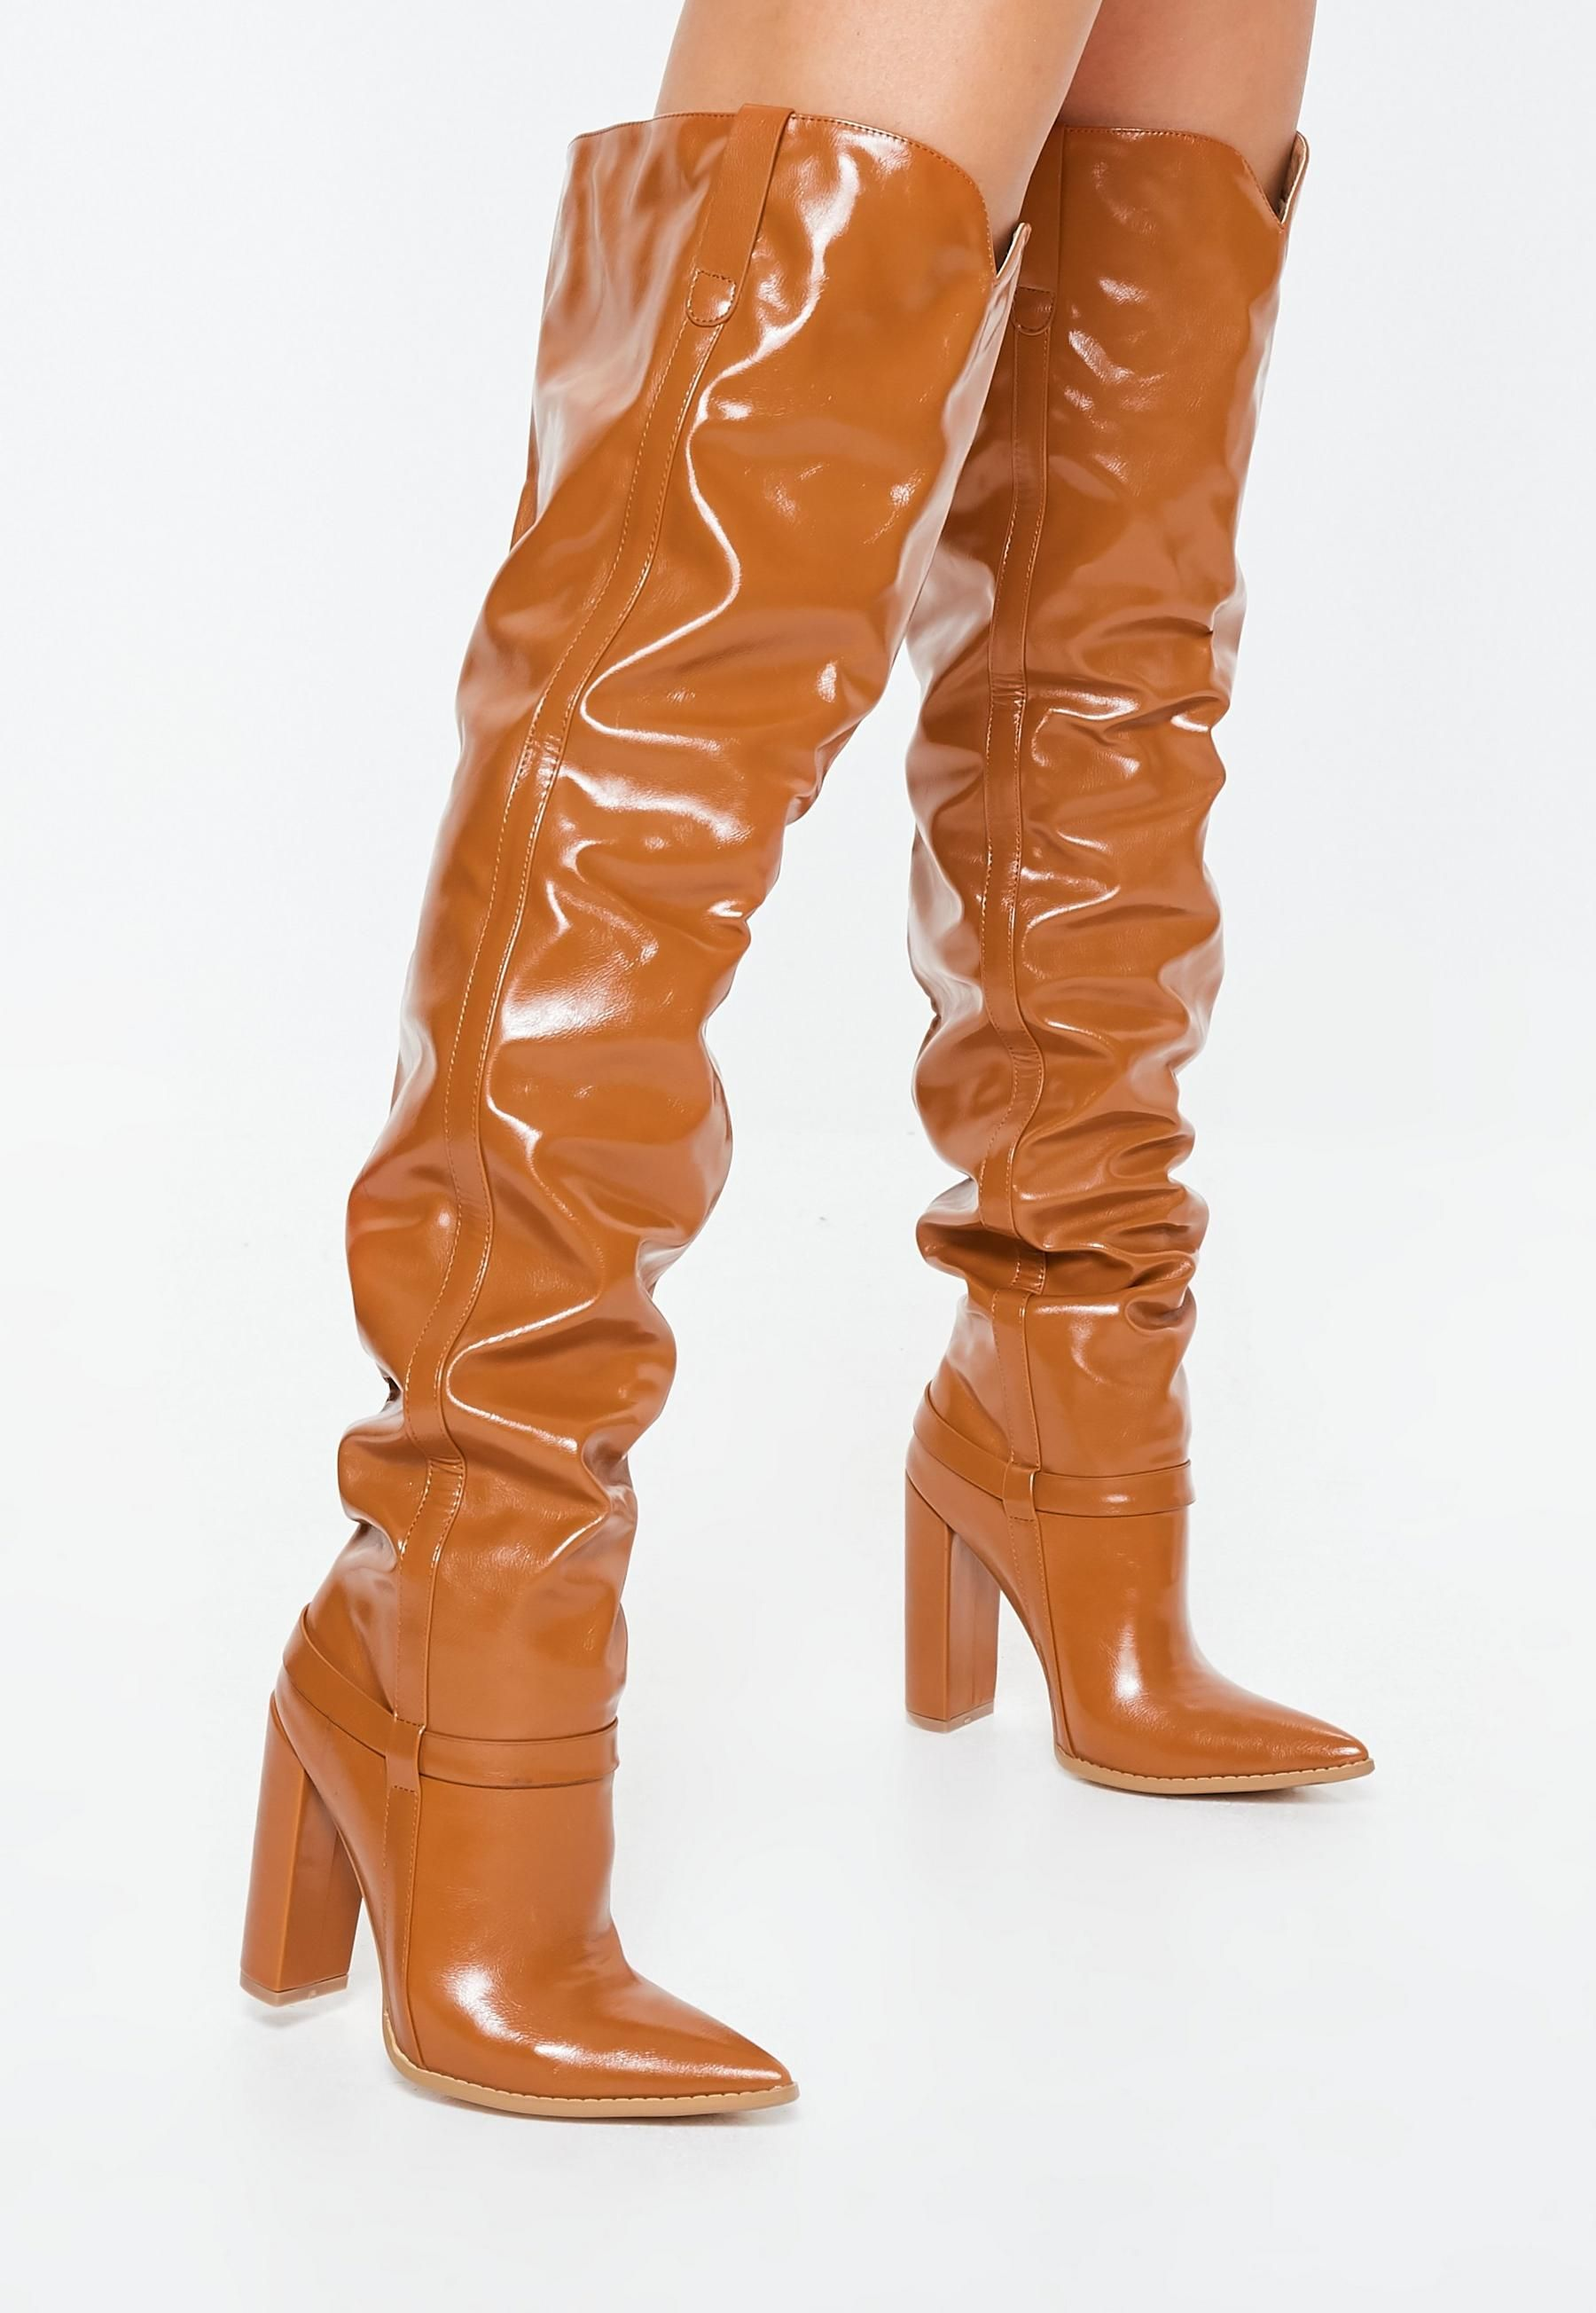 d32c2ea6621 Tan Block Heel Faux Leather Thigh High Boots in 2019 | Booted Up ...